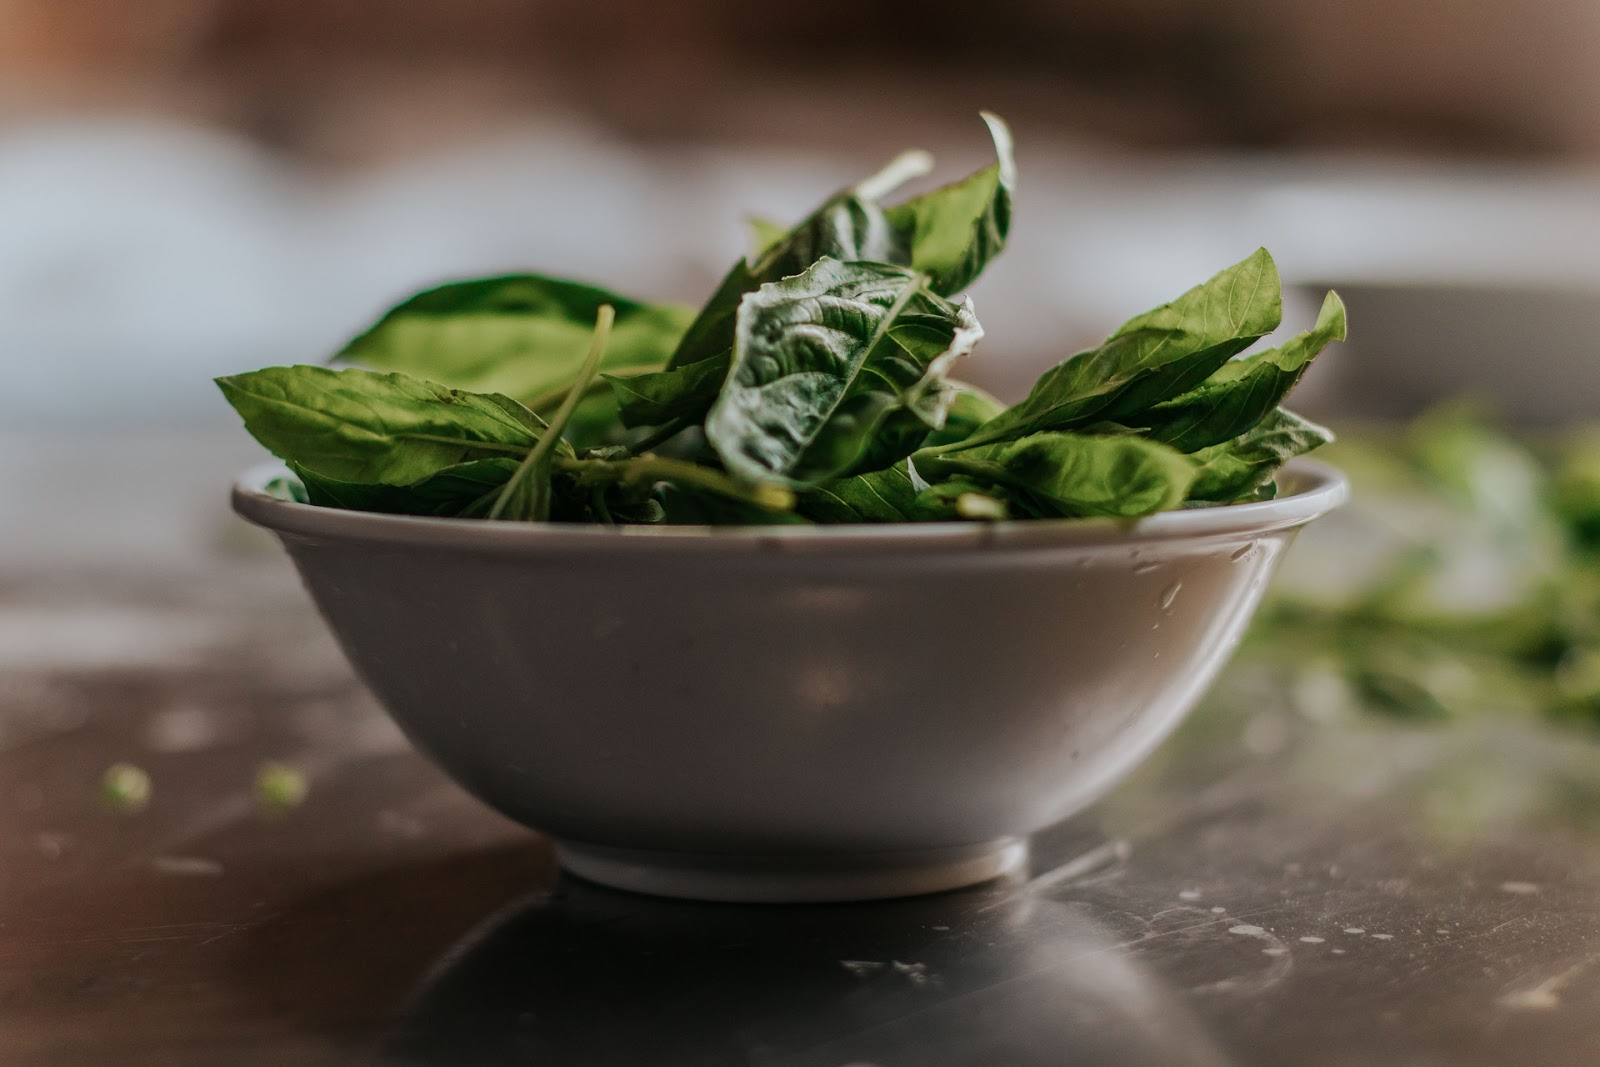 A bowl of raw spinach on a worktop.